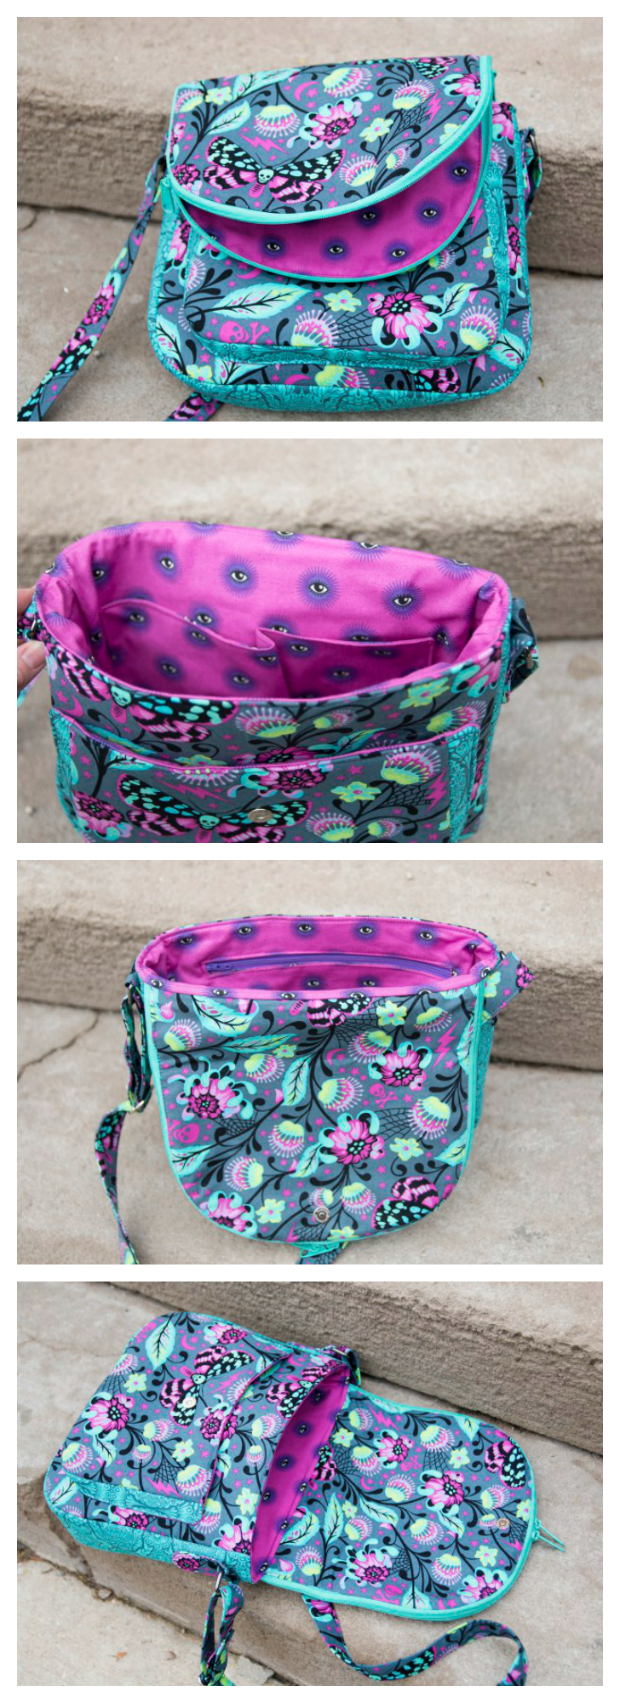 The Satellite Bag pattern features a 3-dimensional front pocket. While the lining features several pockets, the bag comes together quickly and can be made in your material of choice, making it the perfect cross-body bag for your next outing. This medium sized bag has lots of interesting details but is still a relatively quick and easy sew.